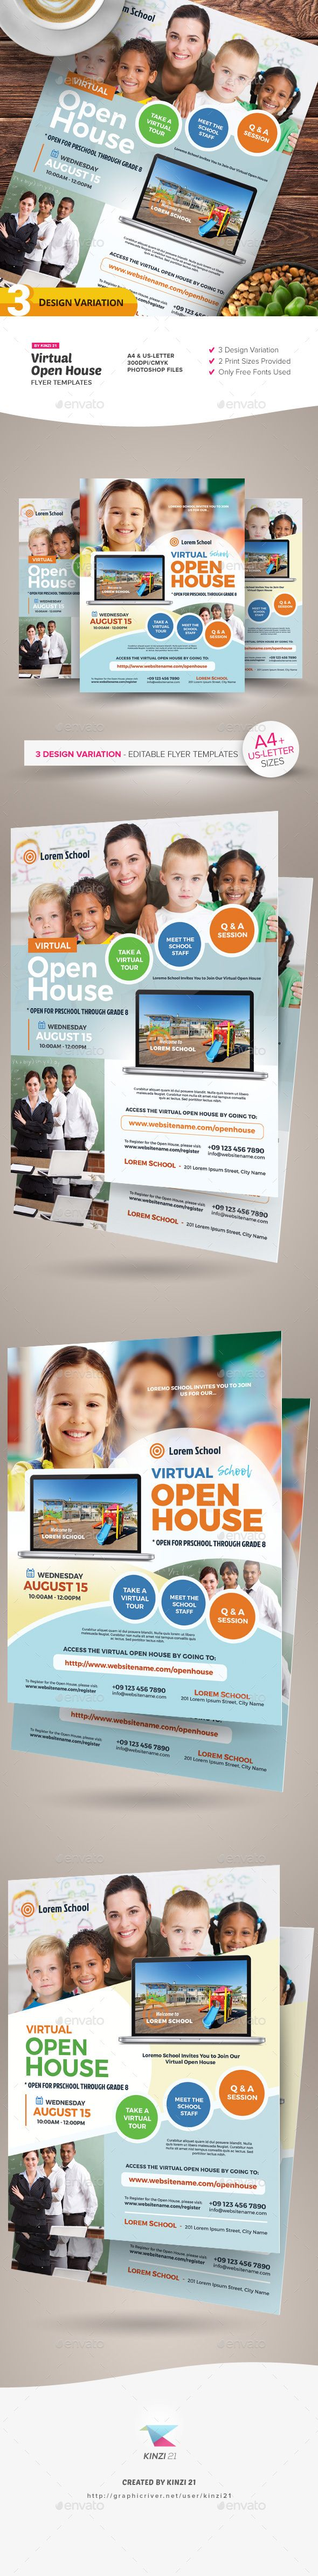 Virtual Open House Flyer Templates In 2020 Flyer Template Flyer Open House